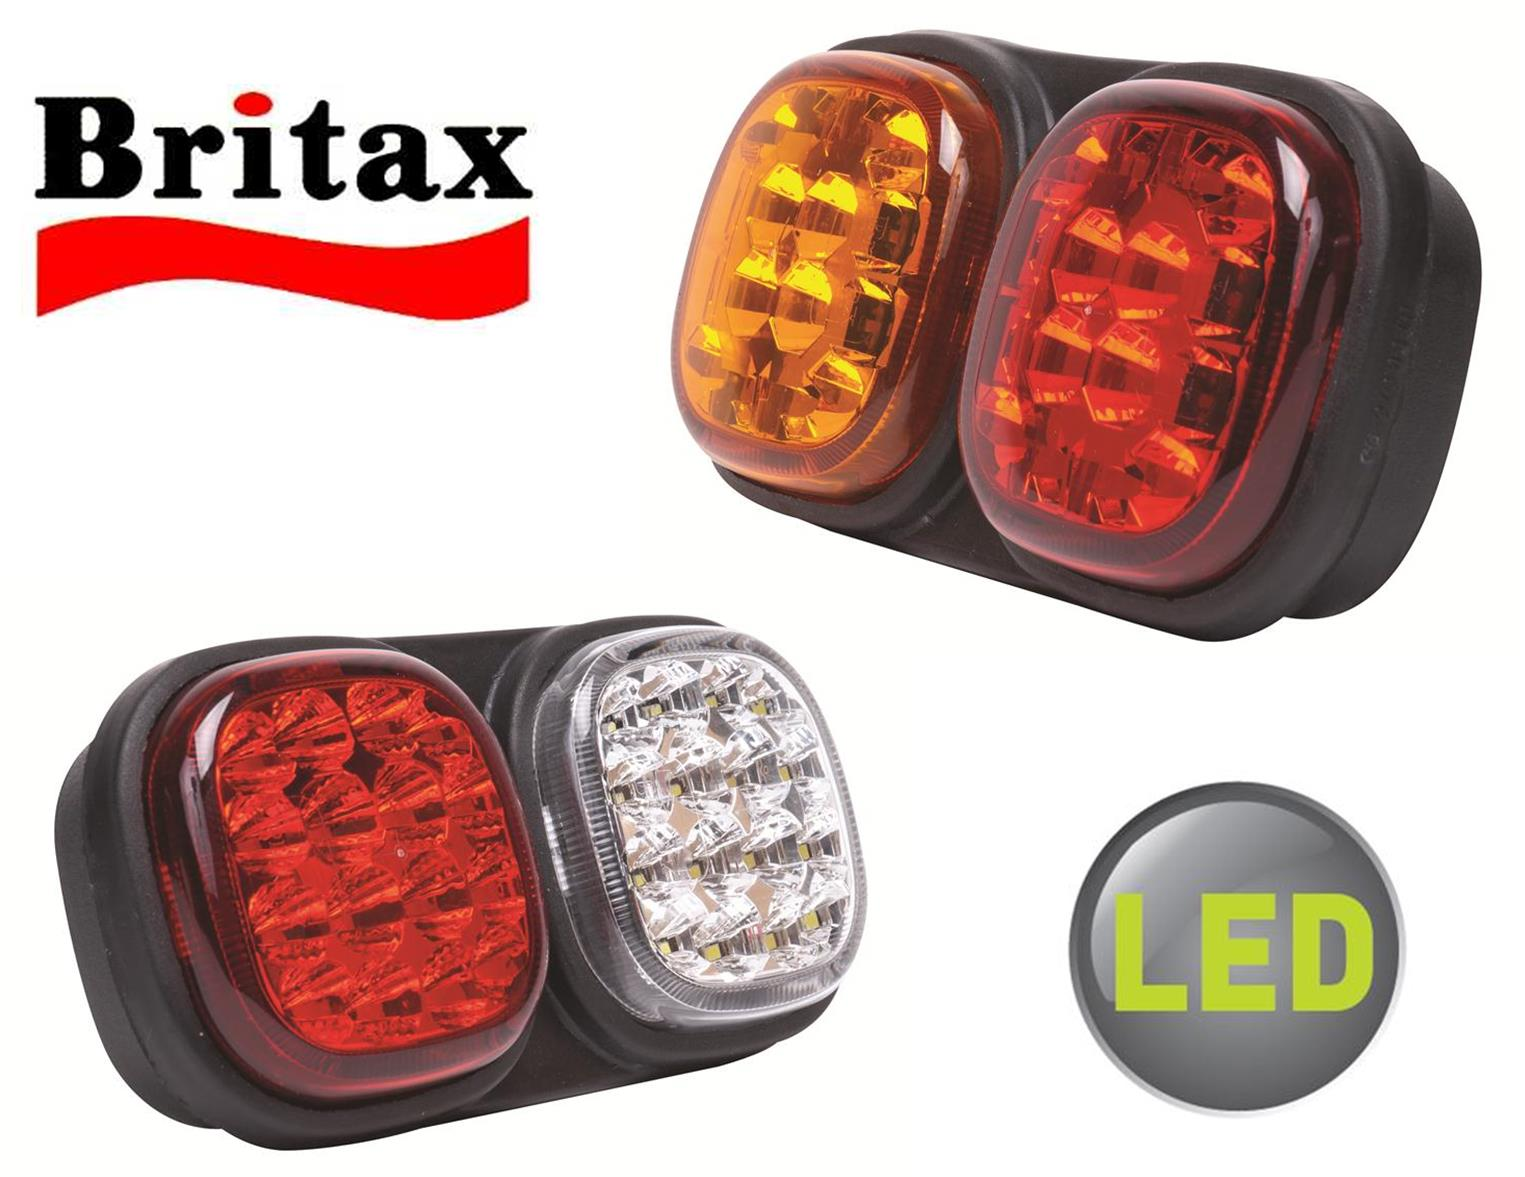 Britax L12 LED Rear Lamps